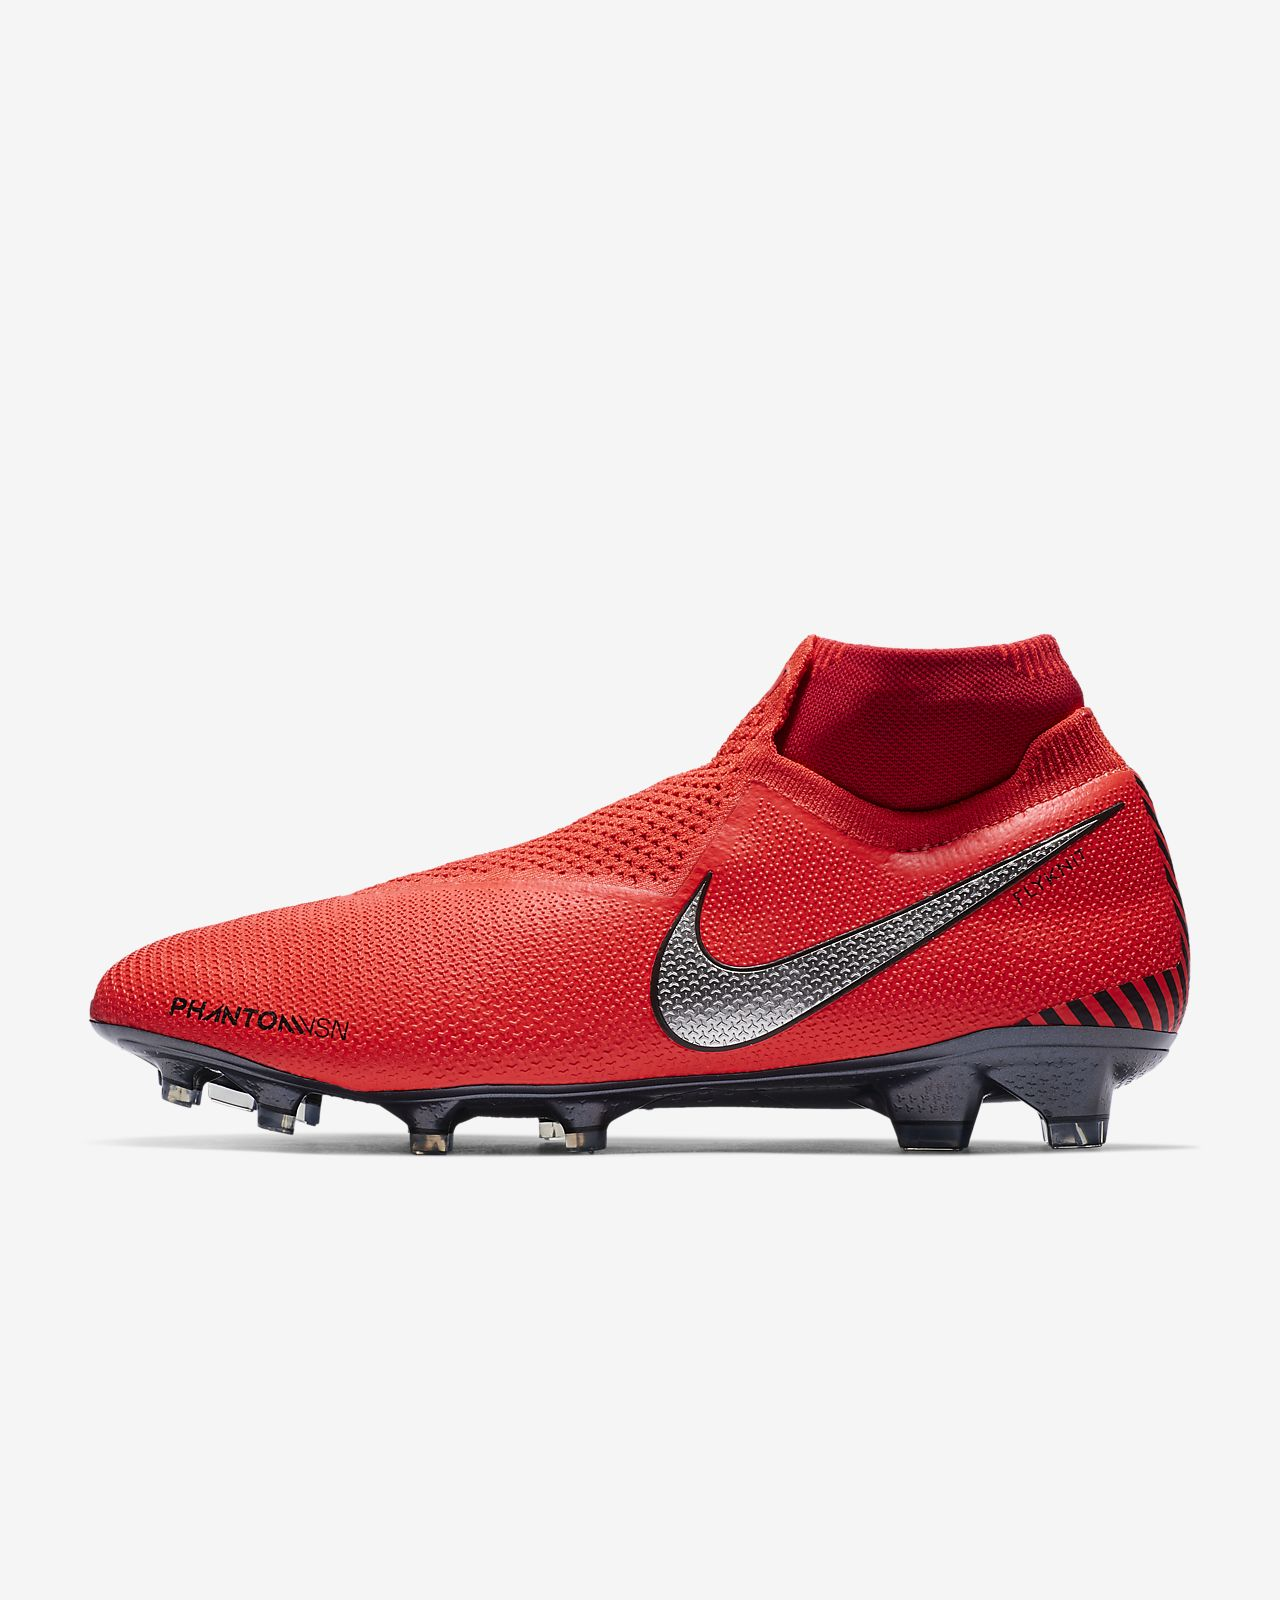 Nike PhantomVSN Elite Dynamic Fit Game Over FG Firm-Ground Football Boot